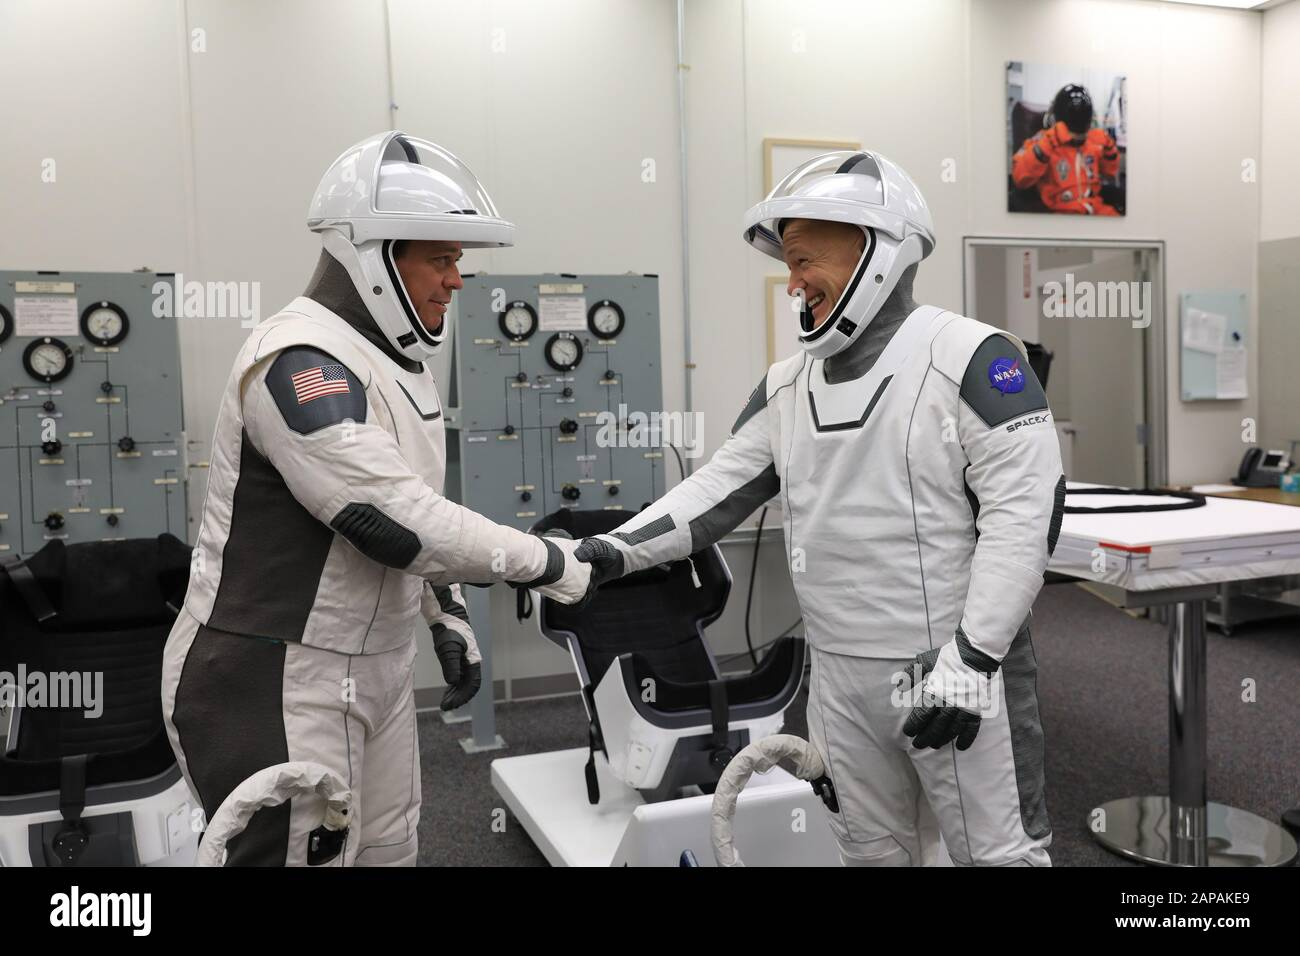 Combinaison SpaceX  - Page 5 Nasa-astronauts-bob-behnken-left-and-doug-hurley-shake-hands-after-suiting-up-in-spacex-spacesuits-in-the-astronaut-crew-quarters-at-kennedy-space-center-in-florida-on-january-17-2020-during-a-dress-rehearsal-ahead-of-the-companys-uncrewed-in-flight-abort-test-a-spacex-falcon-9-rocket-and-crew-dragon-spacecraft-will-lift-off-from-launch-complex-39a-on-the-flight-test-which-will-demonstrate-the-spacecrafts-escape-capabilities-in-preparation-for-crewed-flights-to-the-international-space-station-as-part-of-the-agencys-commercial-crew-program-behnken-and-hurley-are-slated-to-fly-on-the-c-2APAKE9